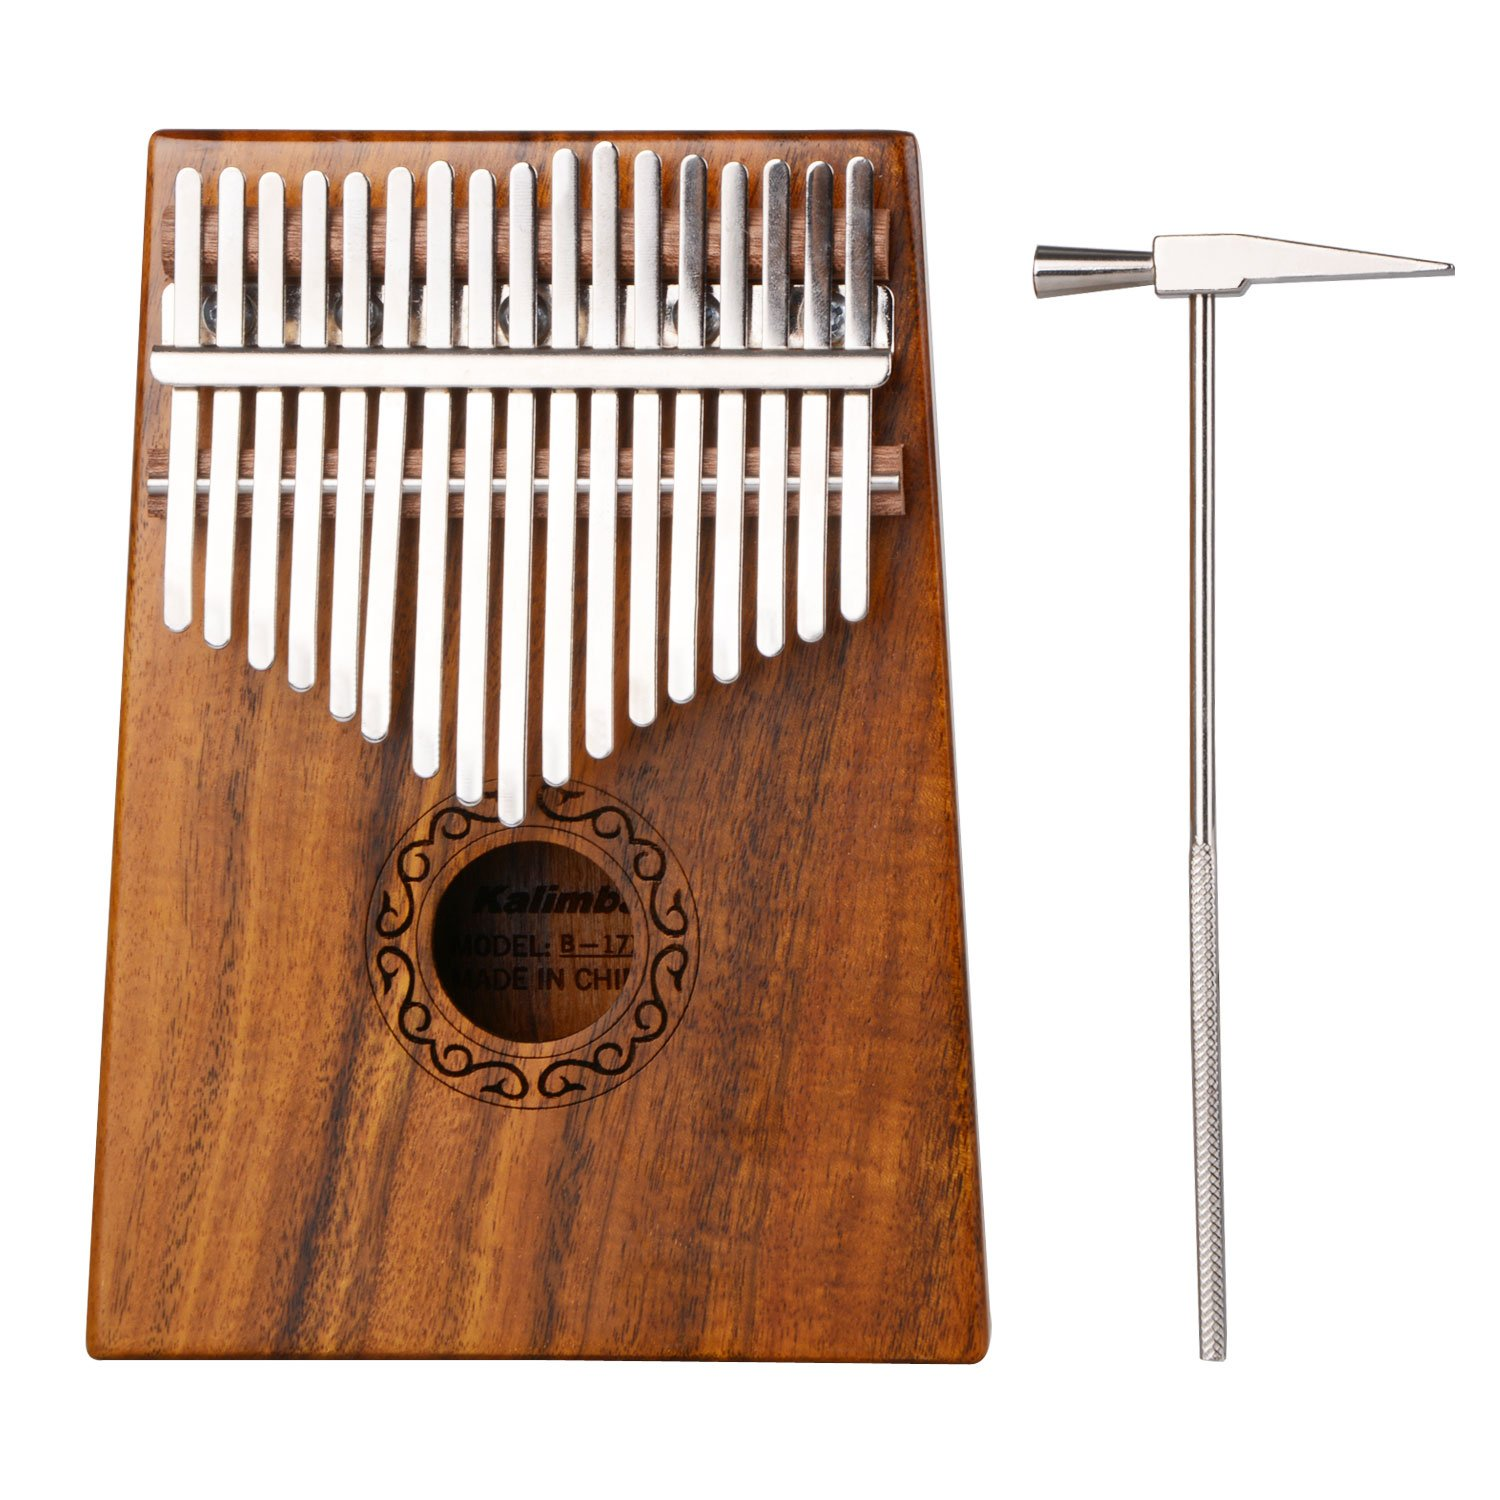 17 Key Kalimba Thumb Piano, Povkeever Portable Finger Piano Pocket Size With Tune Hammer for Beginners and Children 1762401